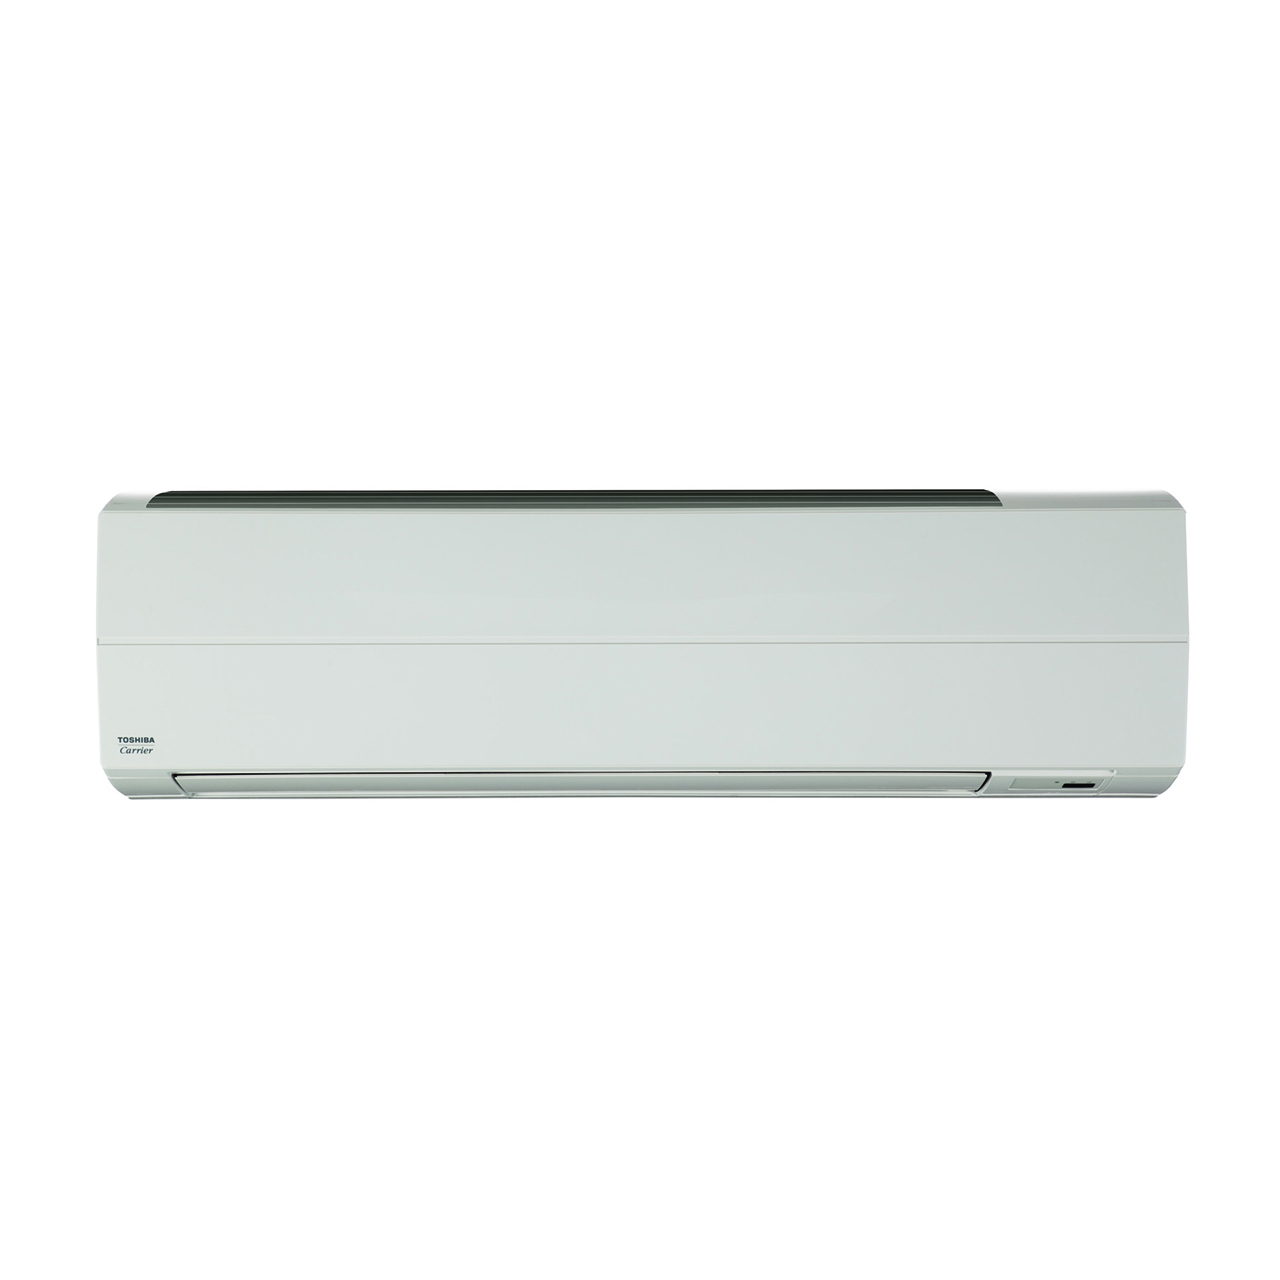 carrier-mmk3-vrf-high-wall-indoor-fan-coil-b